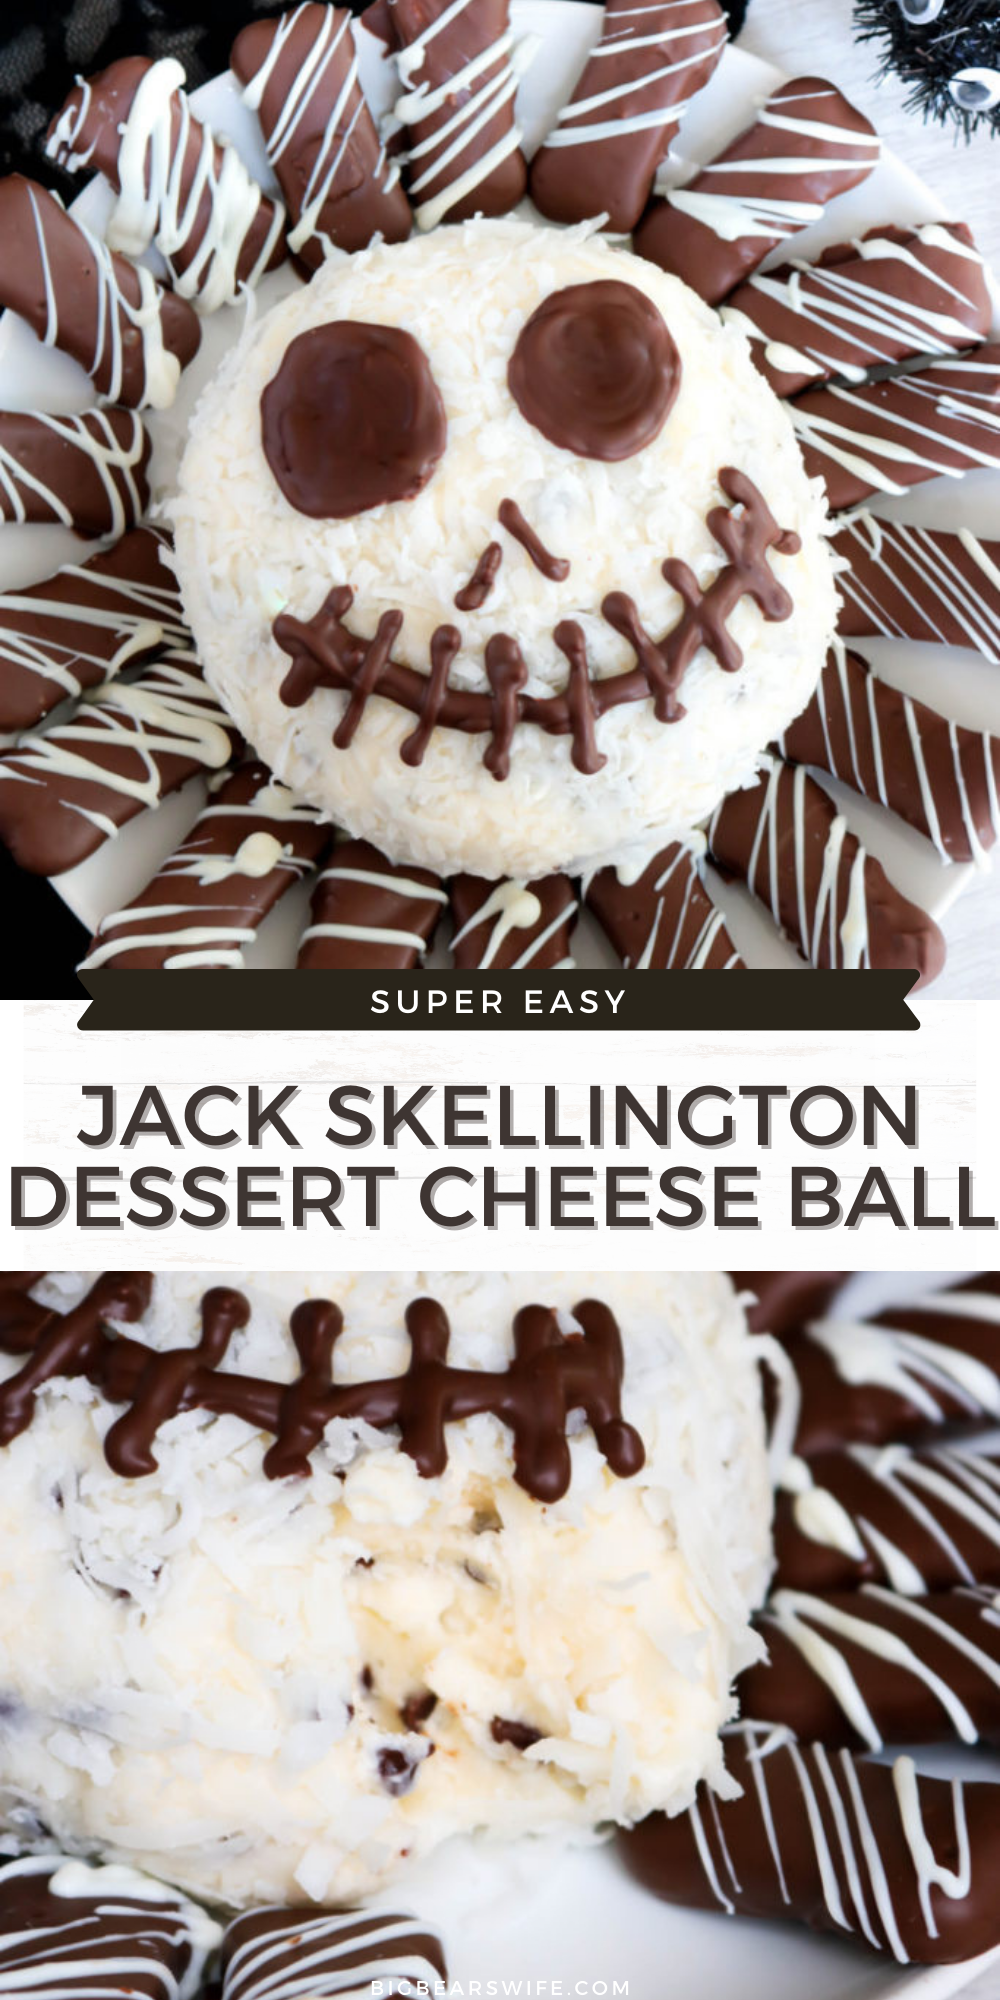 In love with The Nightmare Before Christmas and Dessert? Well this Jack Skellington Dessert Cheese Ball is for you! The Pumpkin King is transformed into a frightfully tasty cheese ball for the perfect Halloween party treat! via @bigbearswife